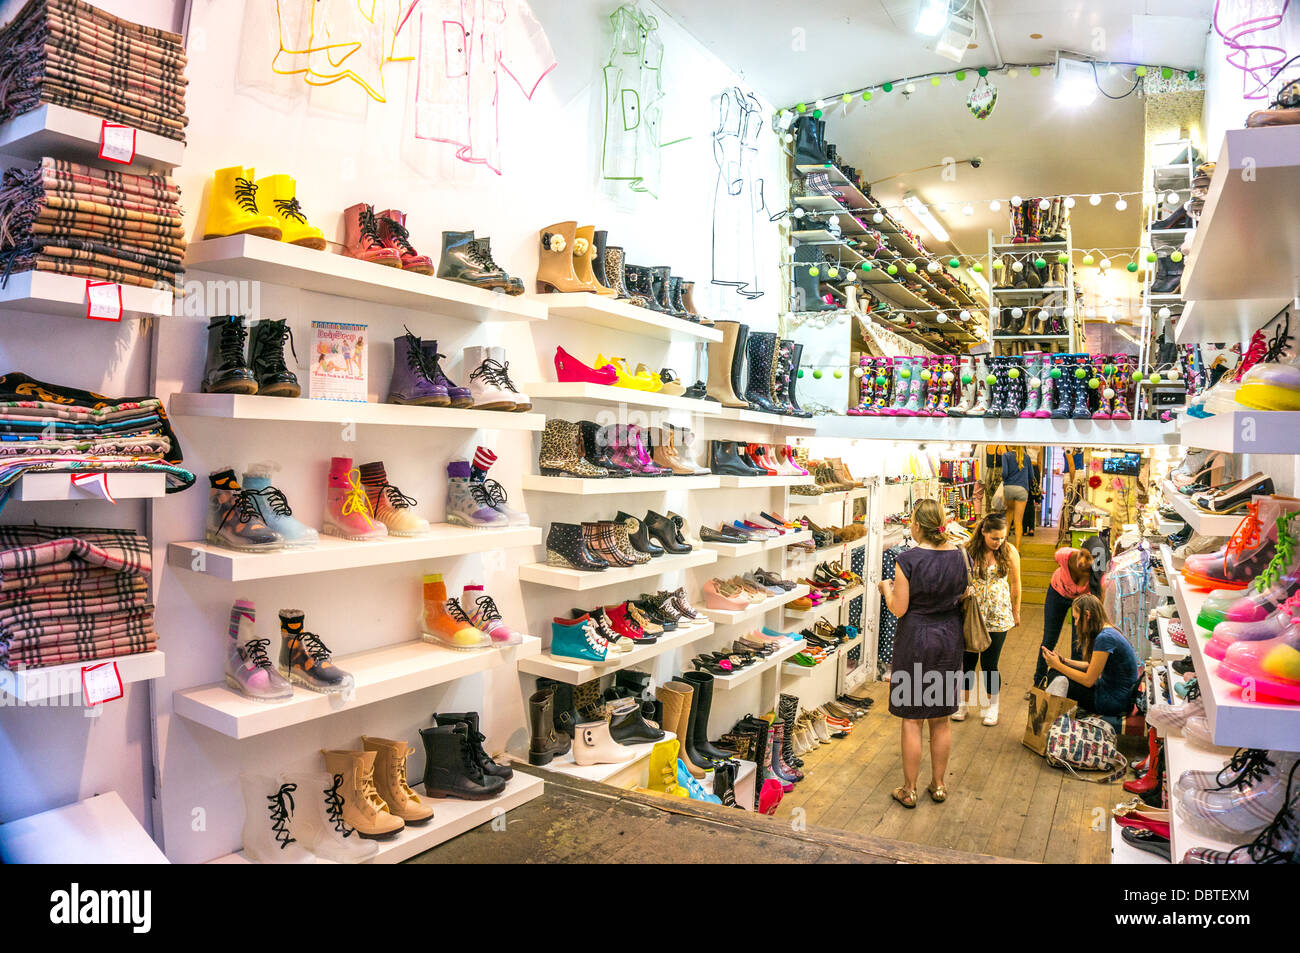 Colourful footwear shop, Camden Market, London, England, UK. - Stock Image